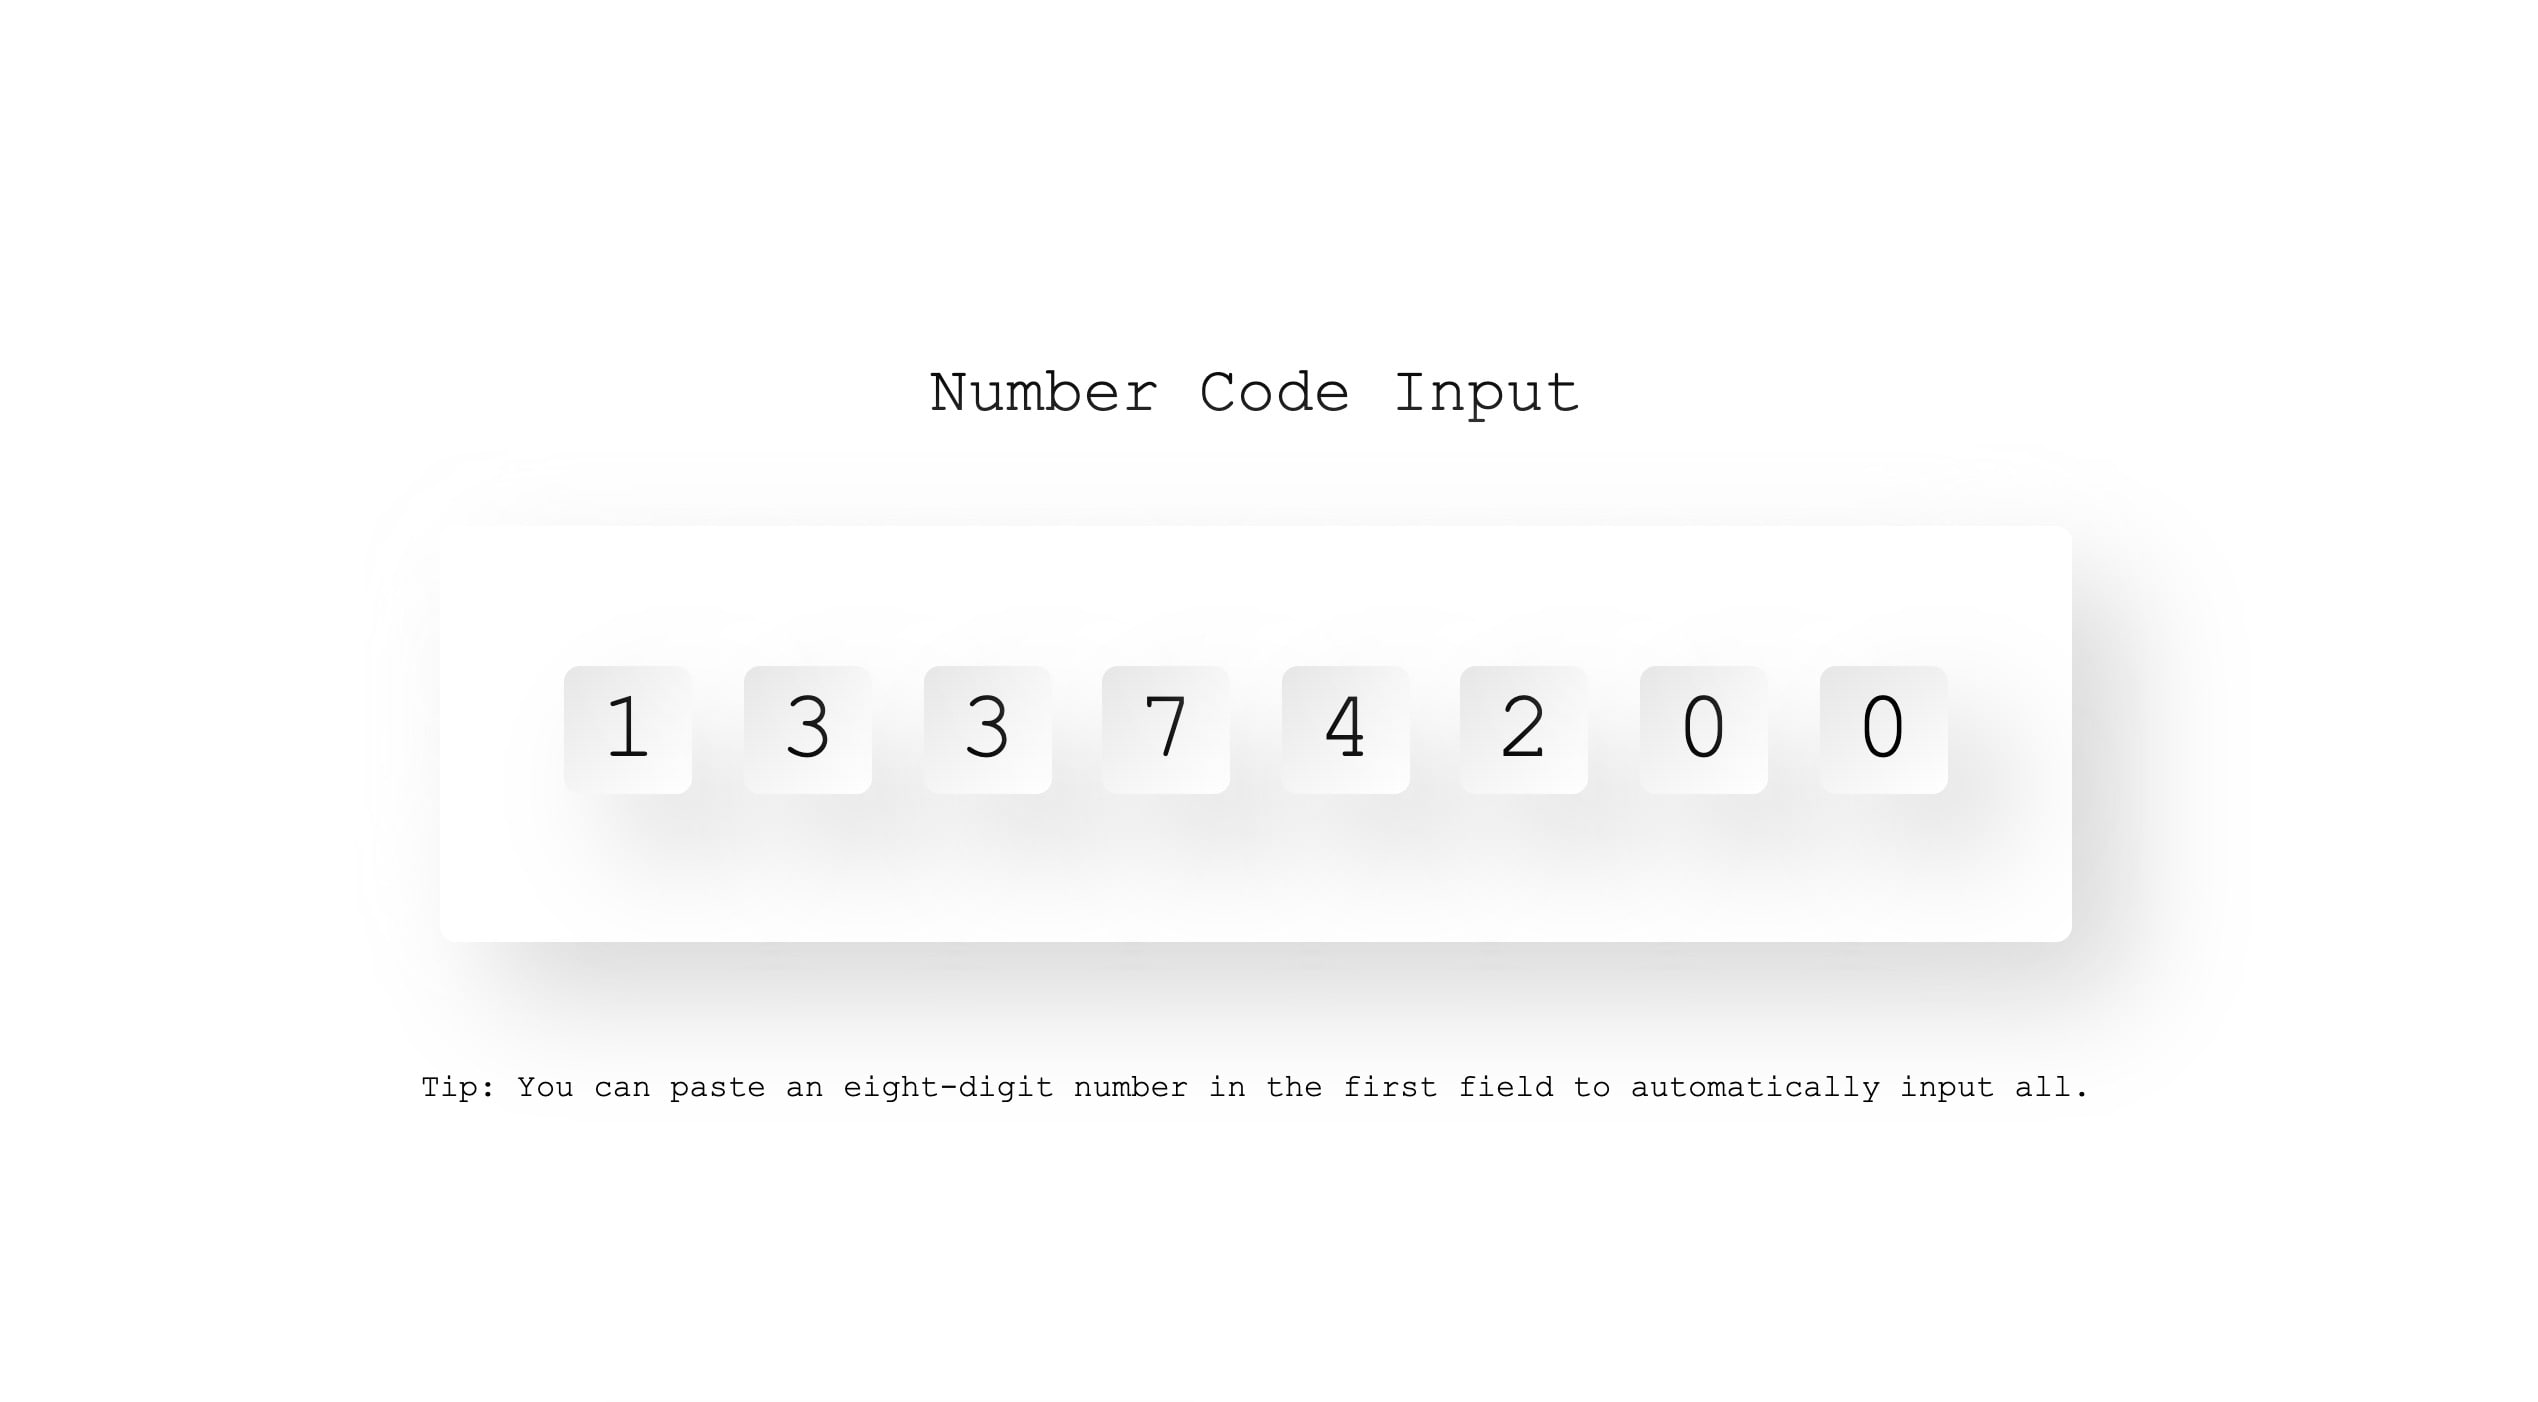 /img/articles/number-code-input.jpg